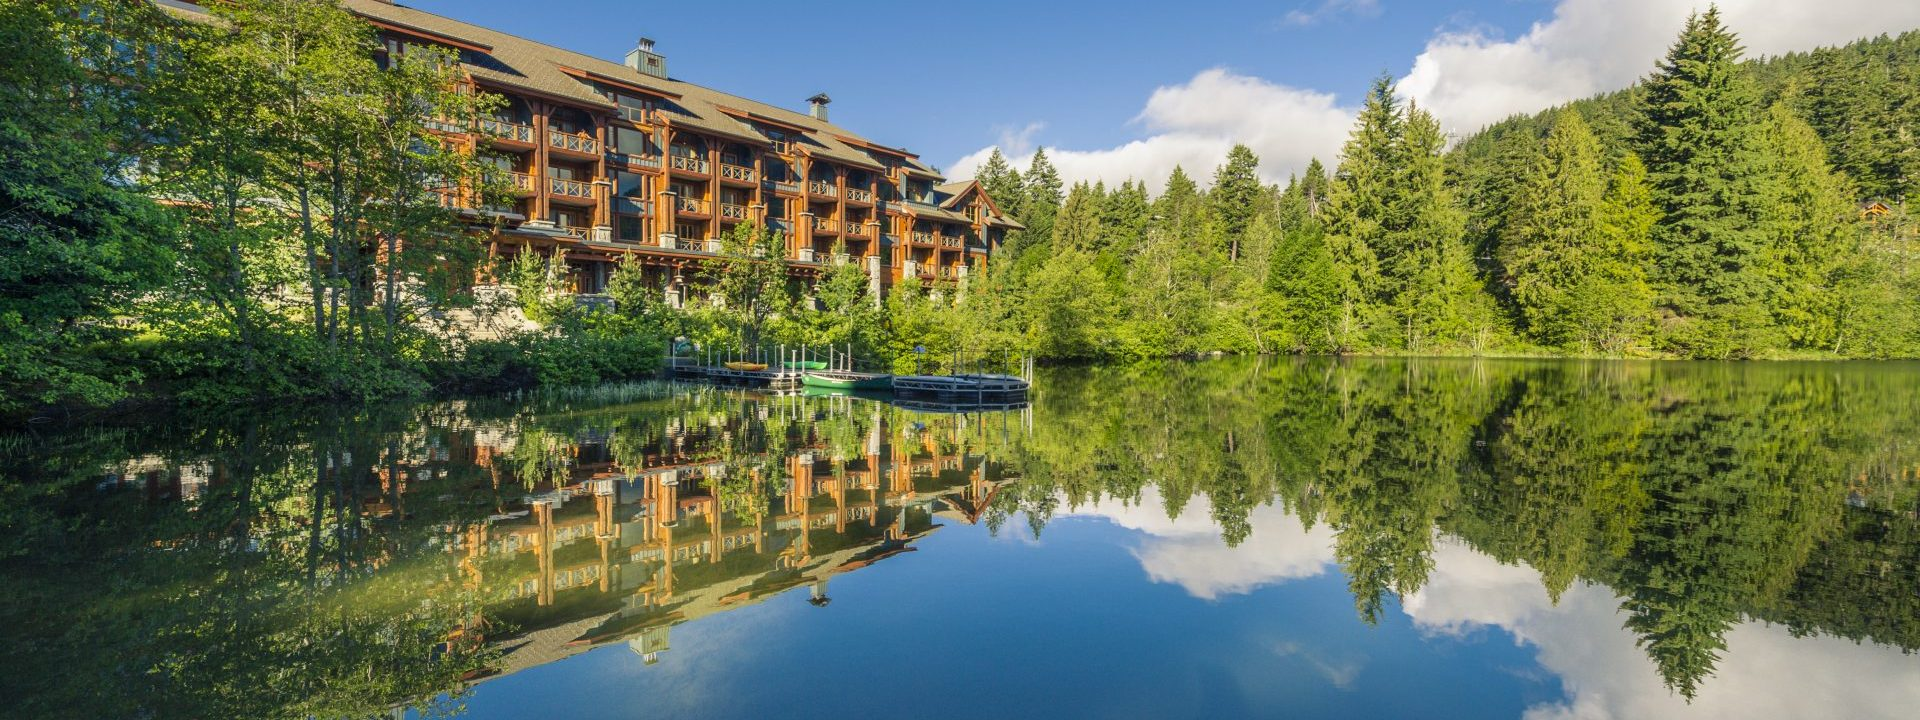 Oh Canada! Nita Lake Lodge ramps up the sex appeal of chalet style